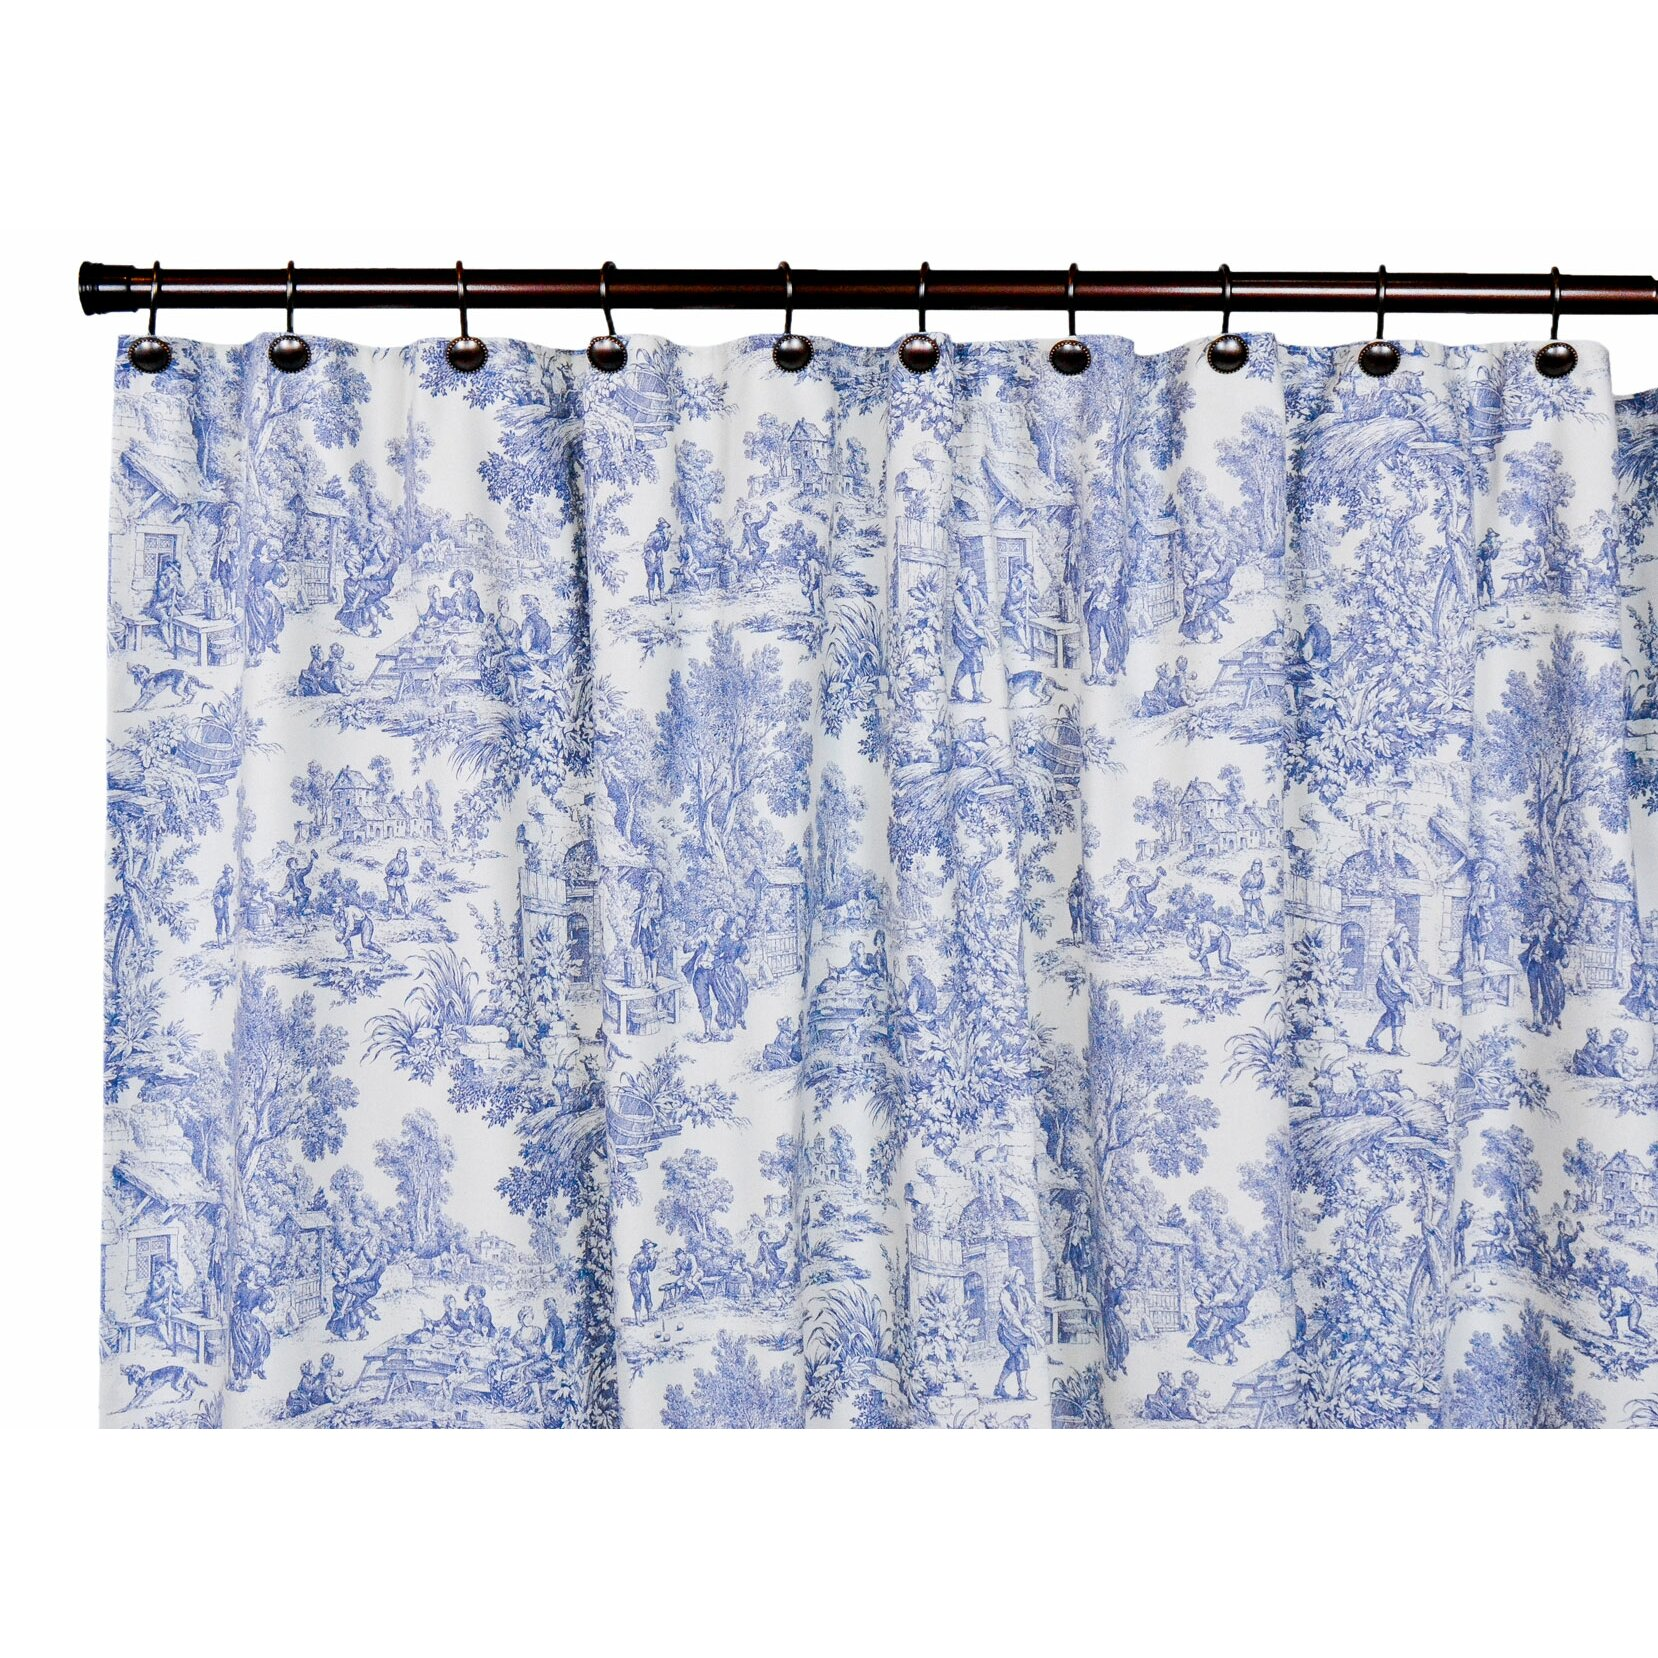 Yellow and blue shower curtain - Black Toile Curtains Yellow Shower Free Image